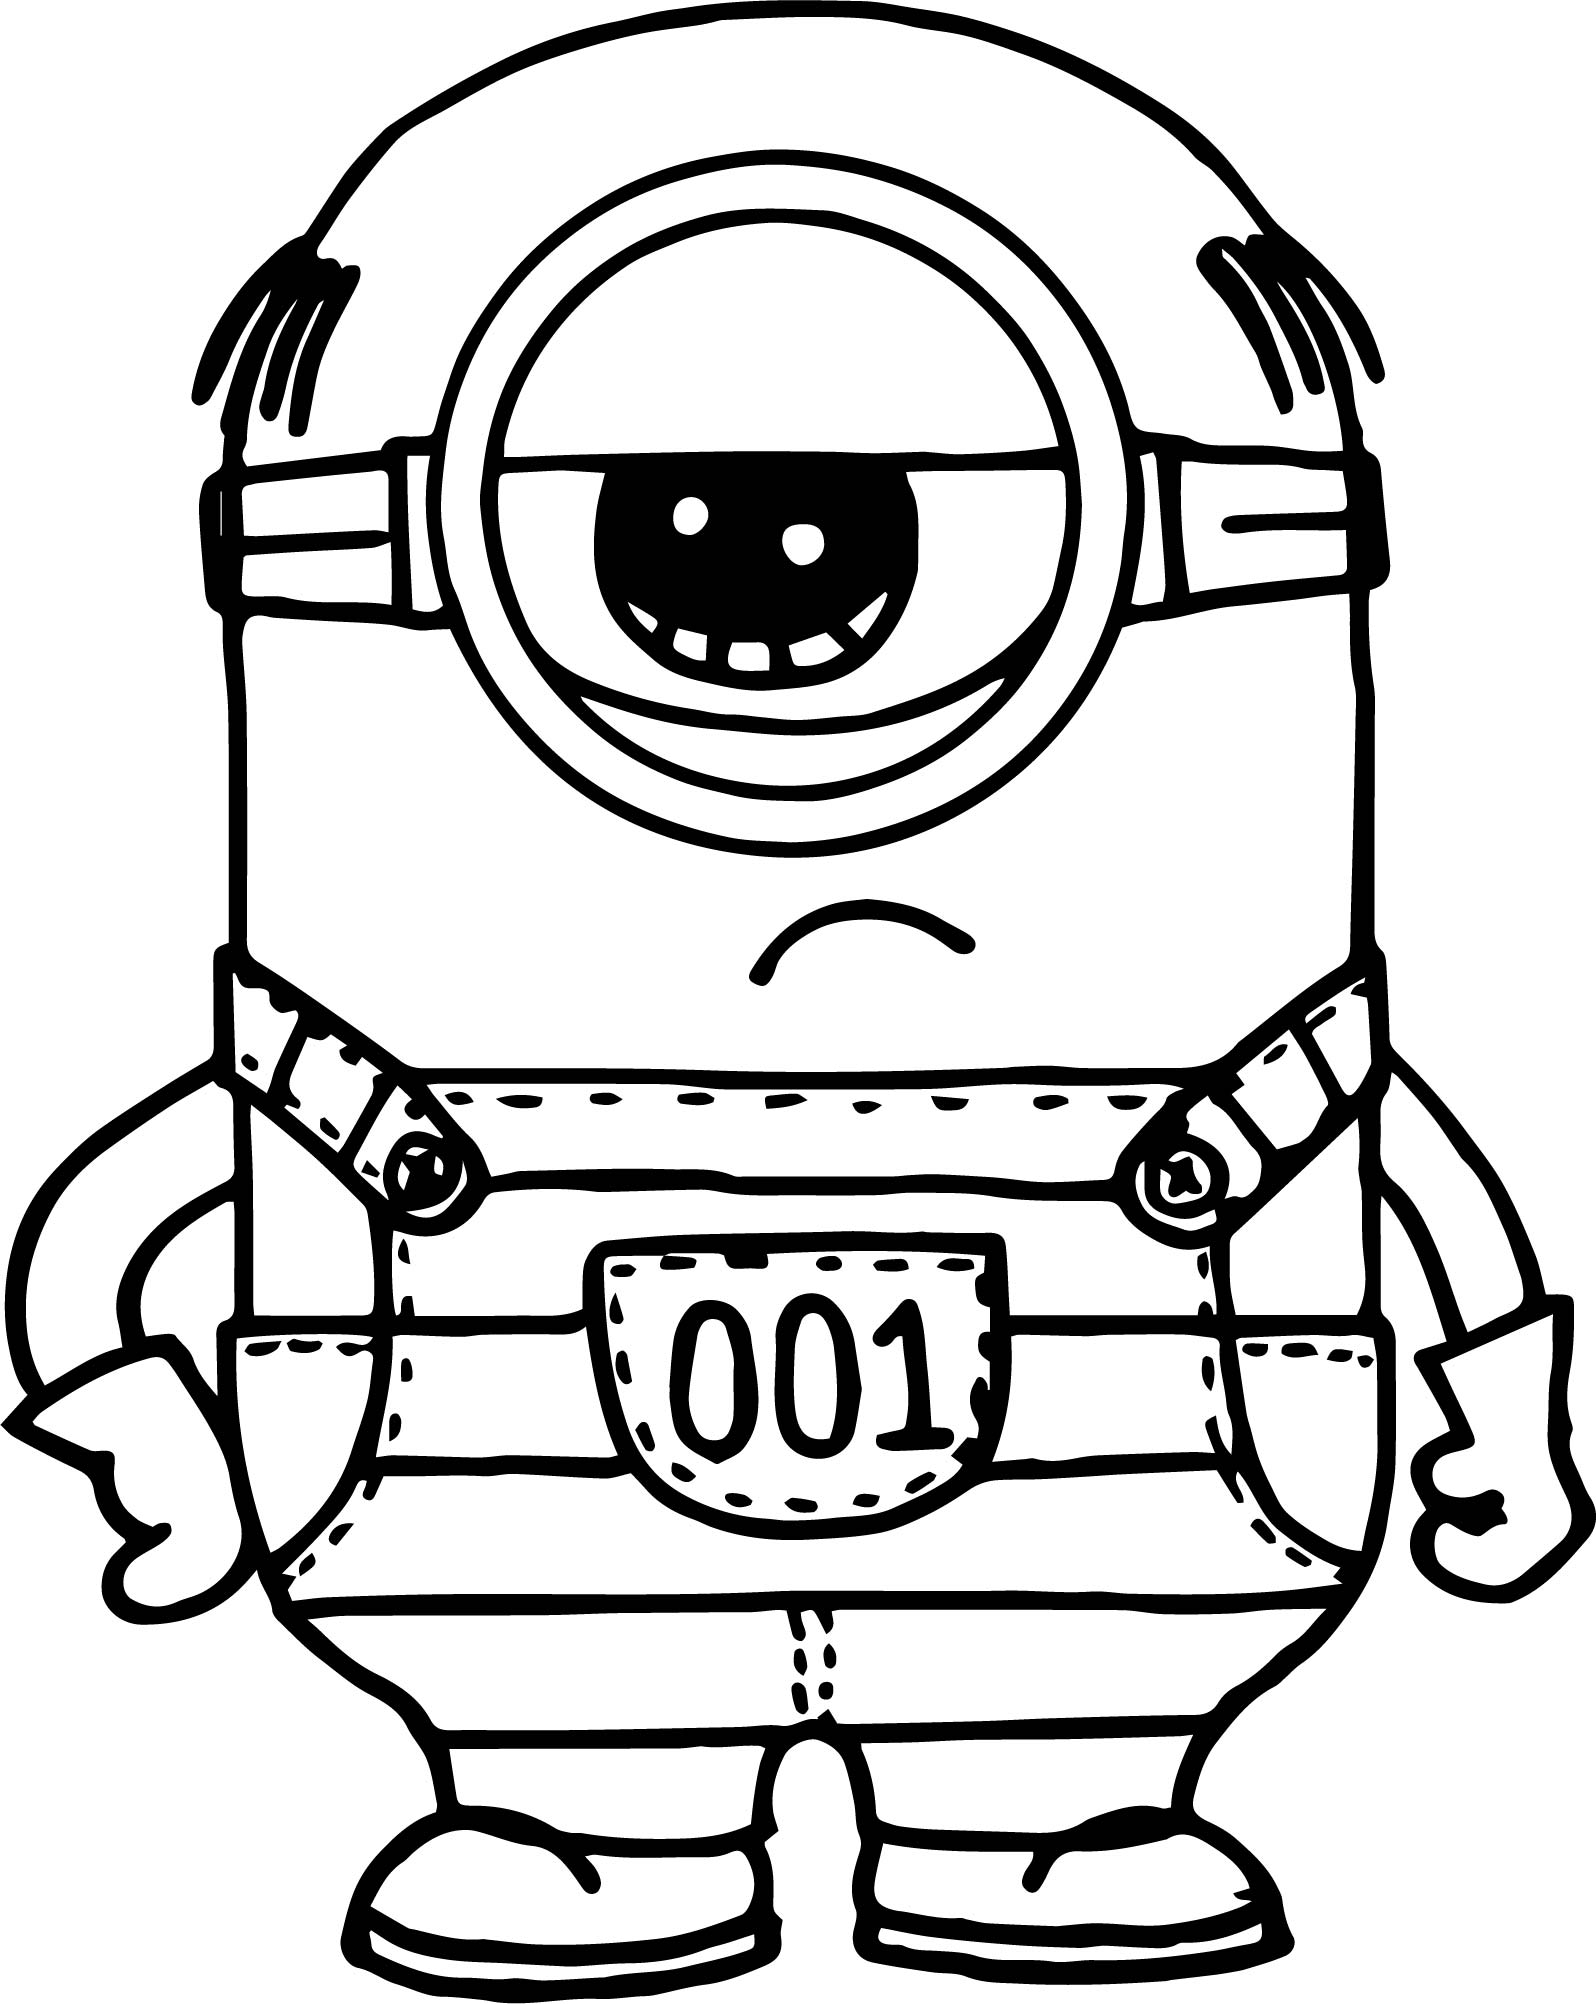 despicable me coloring pages get this despicable me characters coloring pages 15am7 me despicable coloring pages